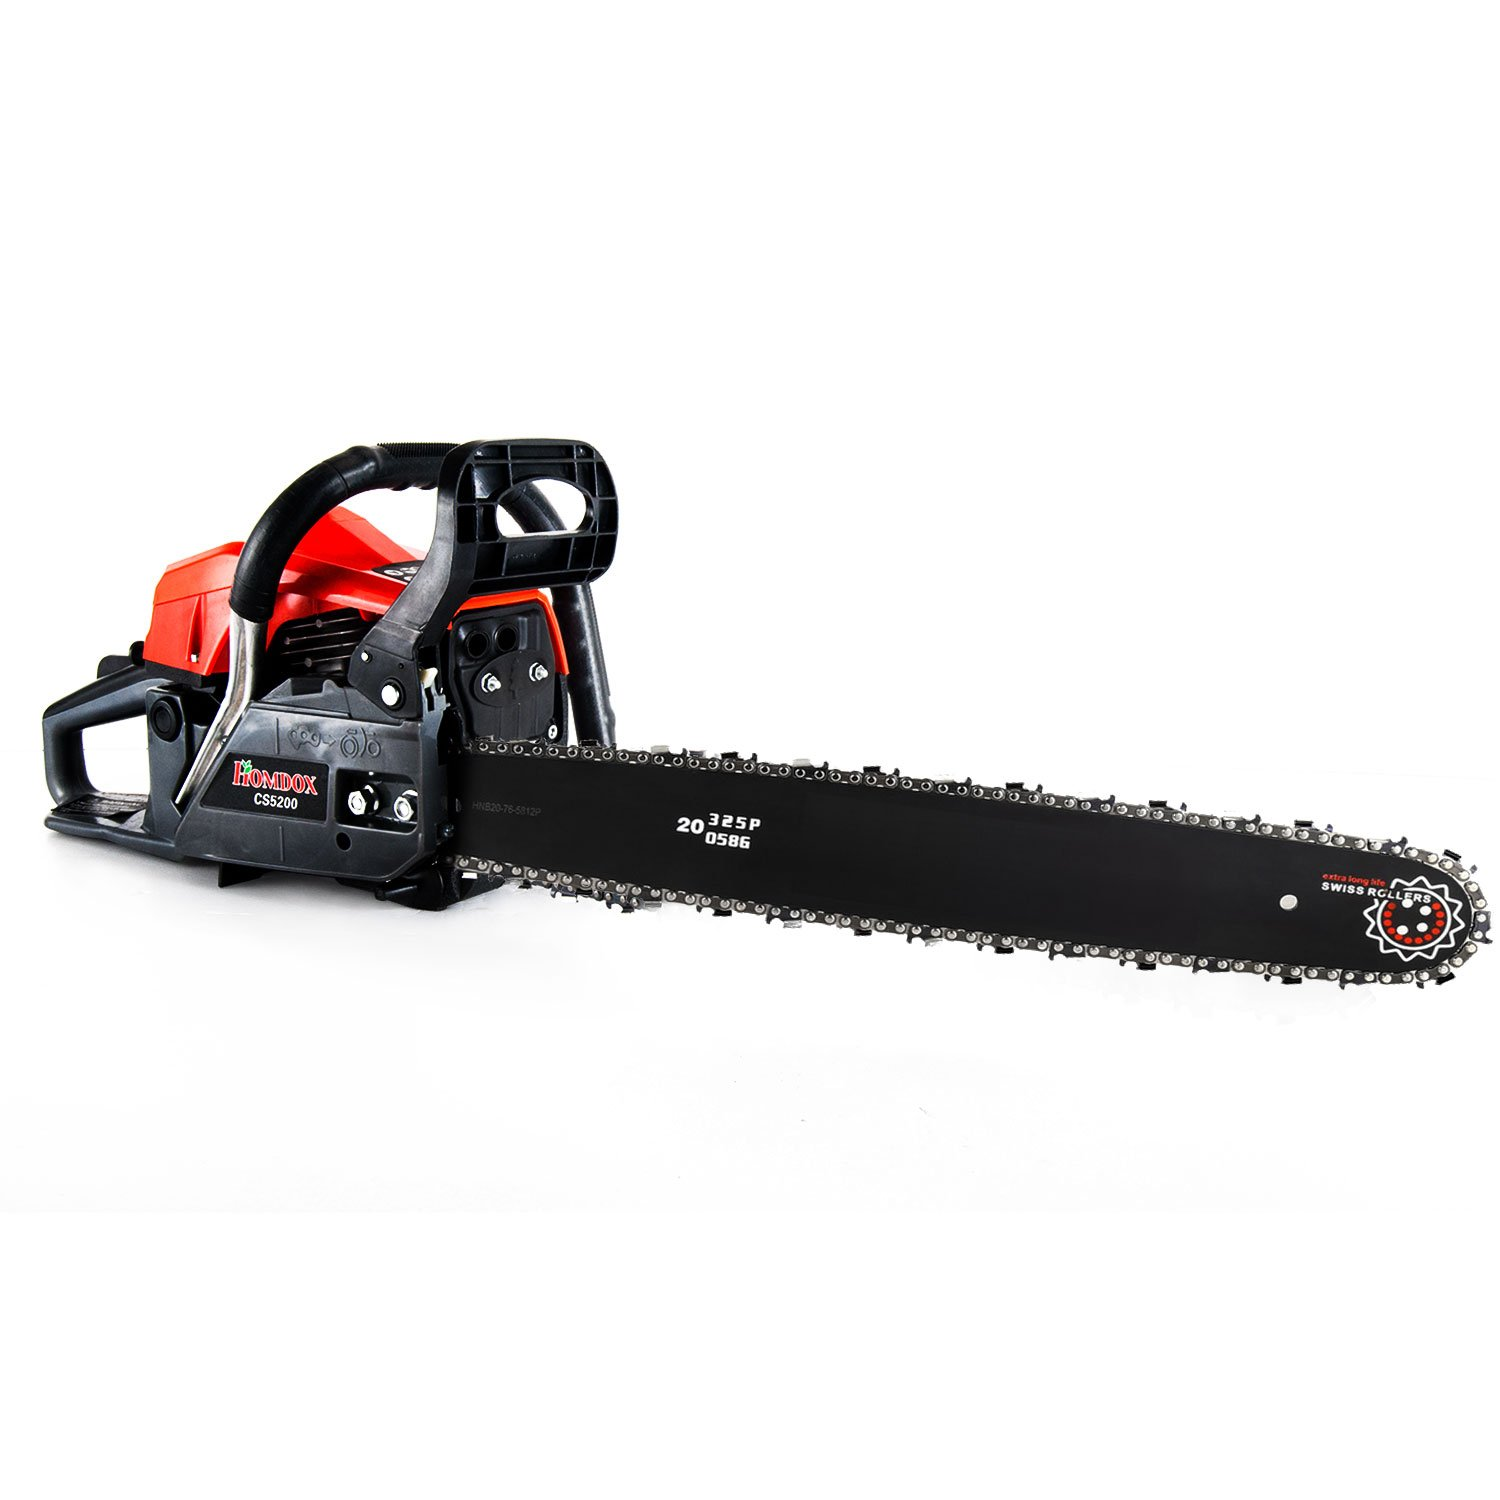 Meditool 20 3hp 52cc Gas Chainsaw With Kw Engine Husqvarna 325 Diagram Low Kickback And Quick Start Garden Outdoor